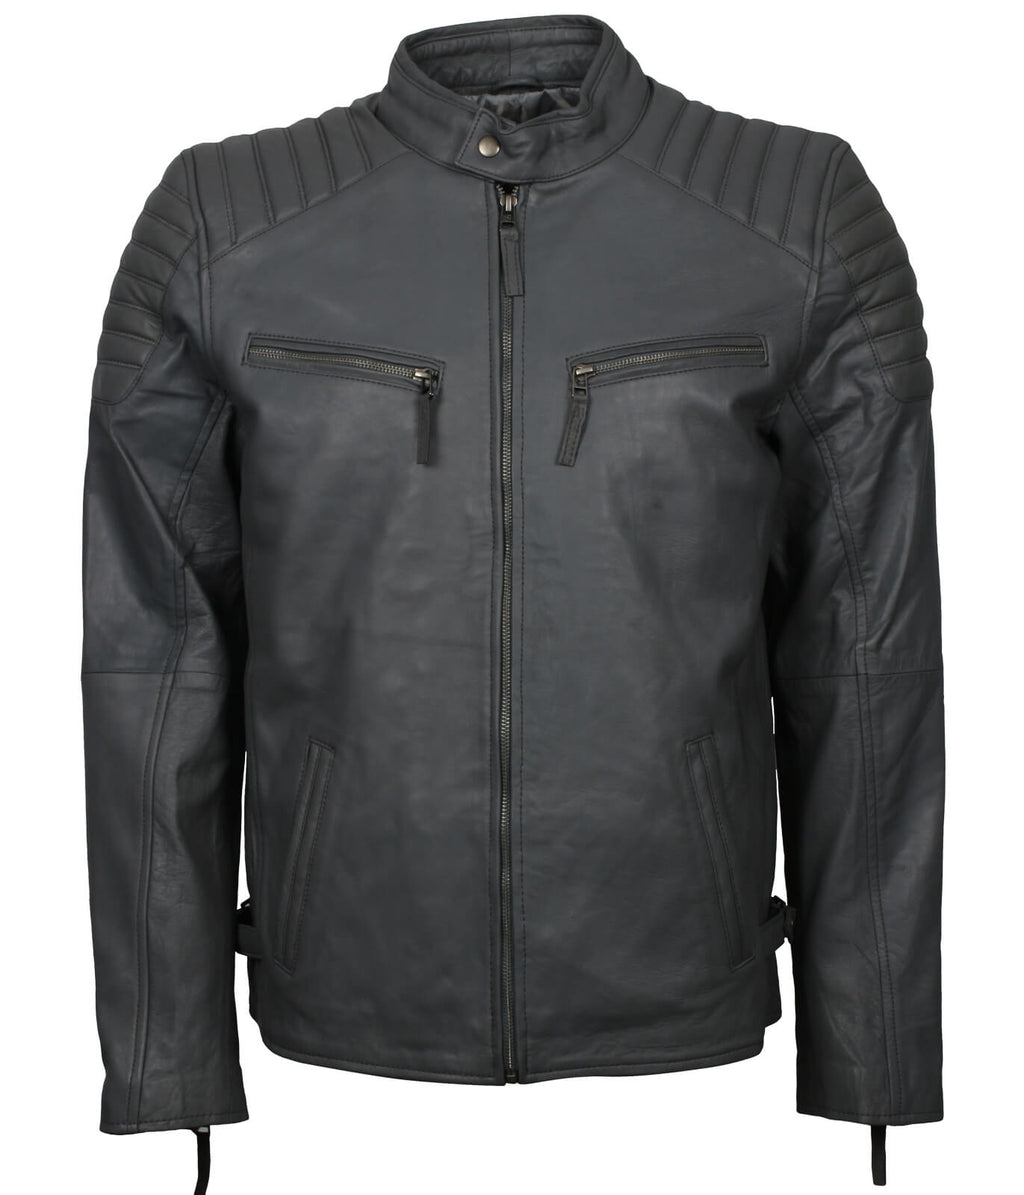 Grey Leather Jacket for Bikers